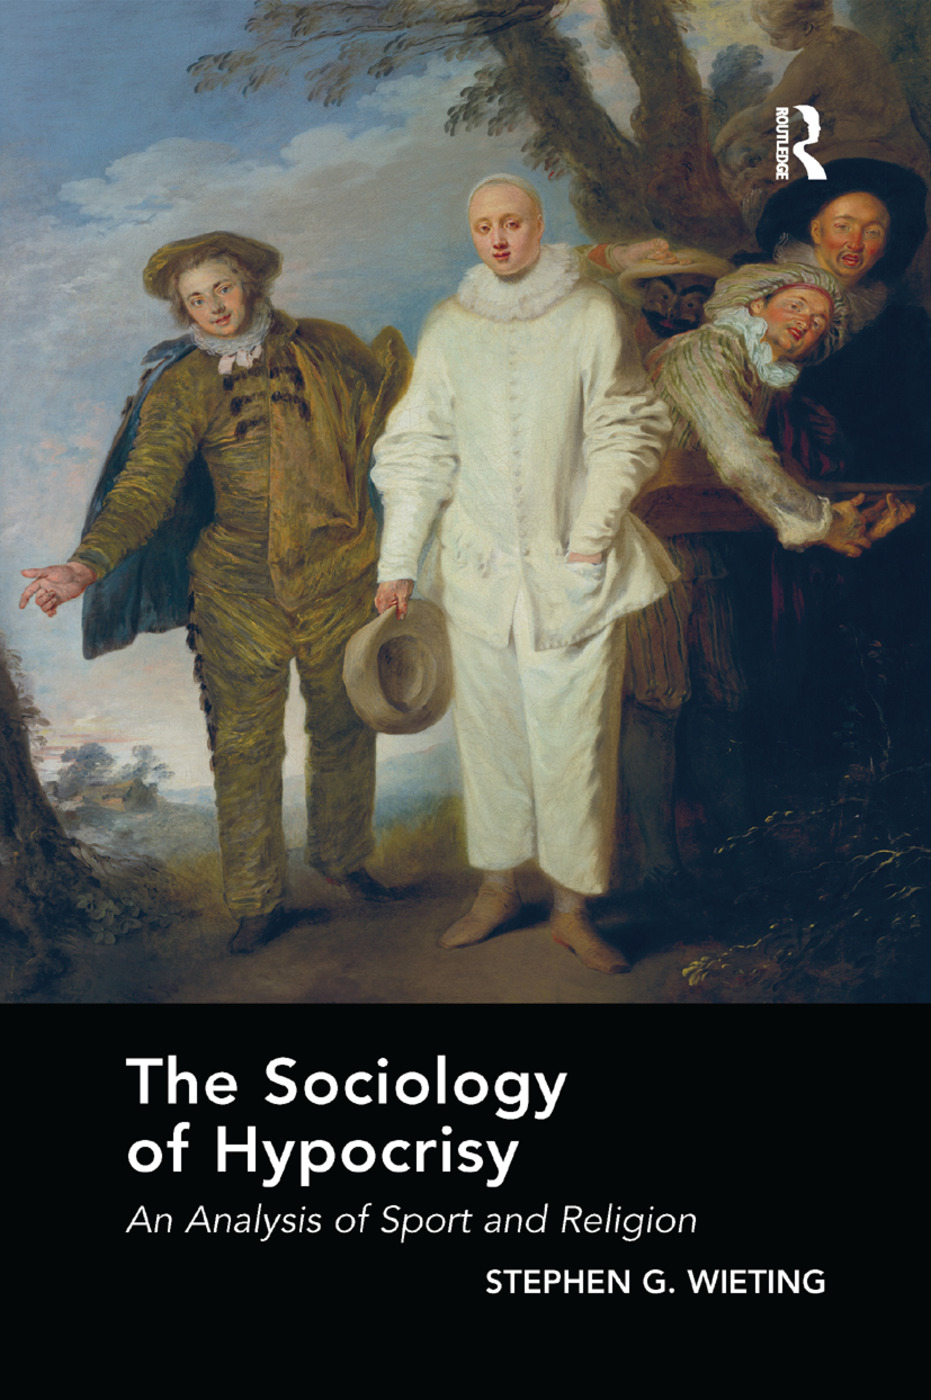 The Sociology of Hypocrisy: An Analysis of Sport and Religion book cover